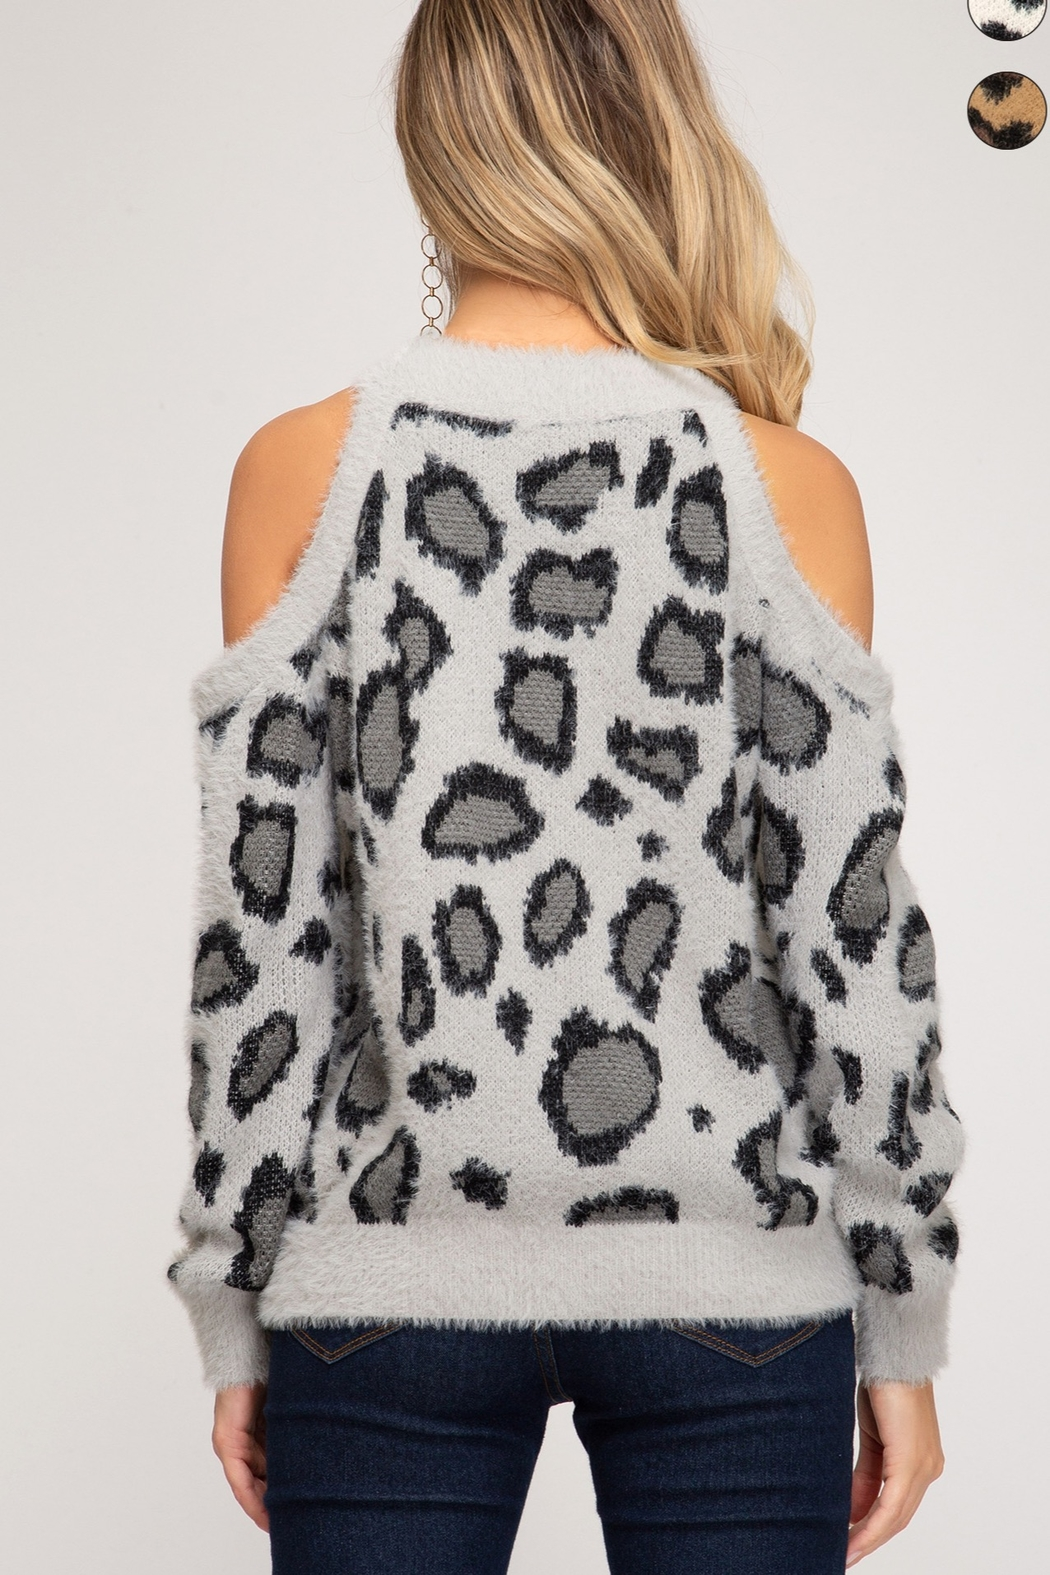 She & Sky  LONG SLEEVE COLD SHOULDER LEOPARD PRINT FUZZY KNIT SWEATER TOP - Side Cropped Image